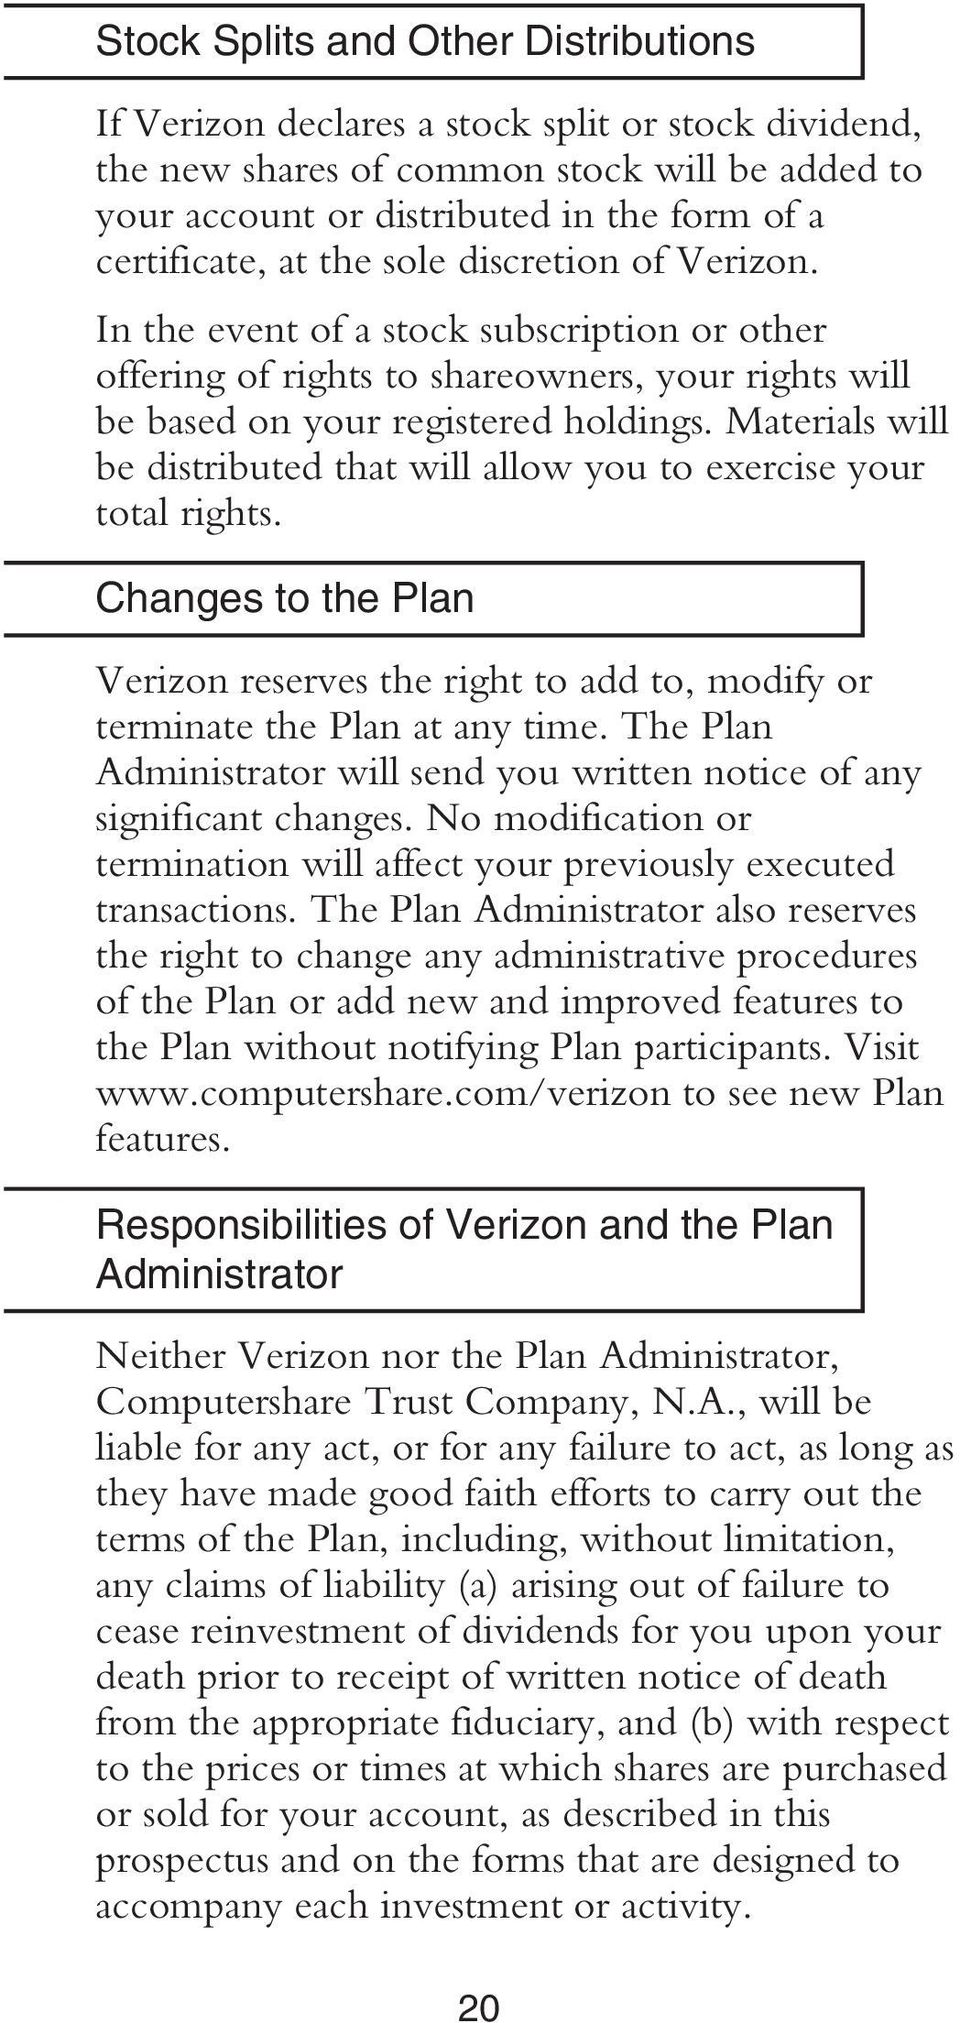 Materials will be distributed that will allow you to exercise your total rights. Changes to the Plan Verizon reserves the right to add to, modify or terminate the Plan at any time.